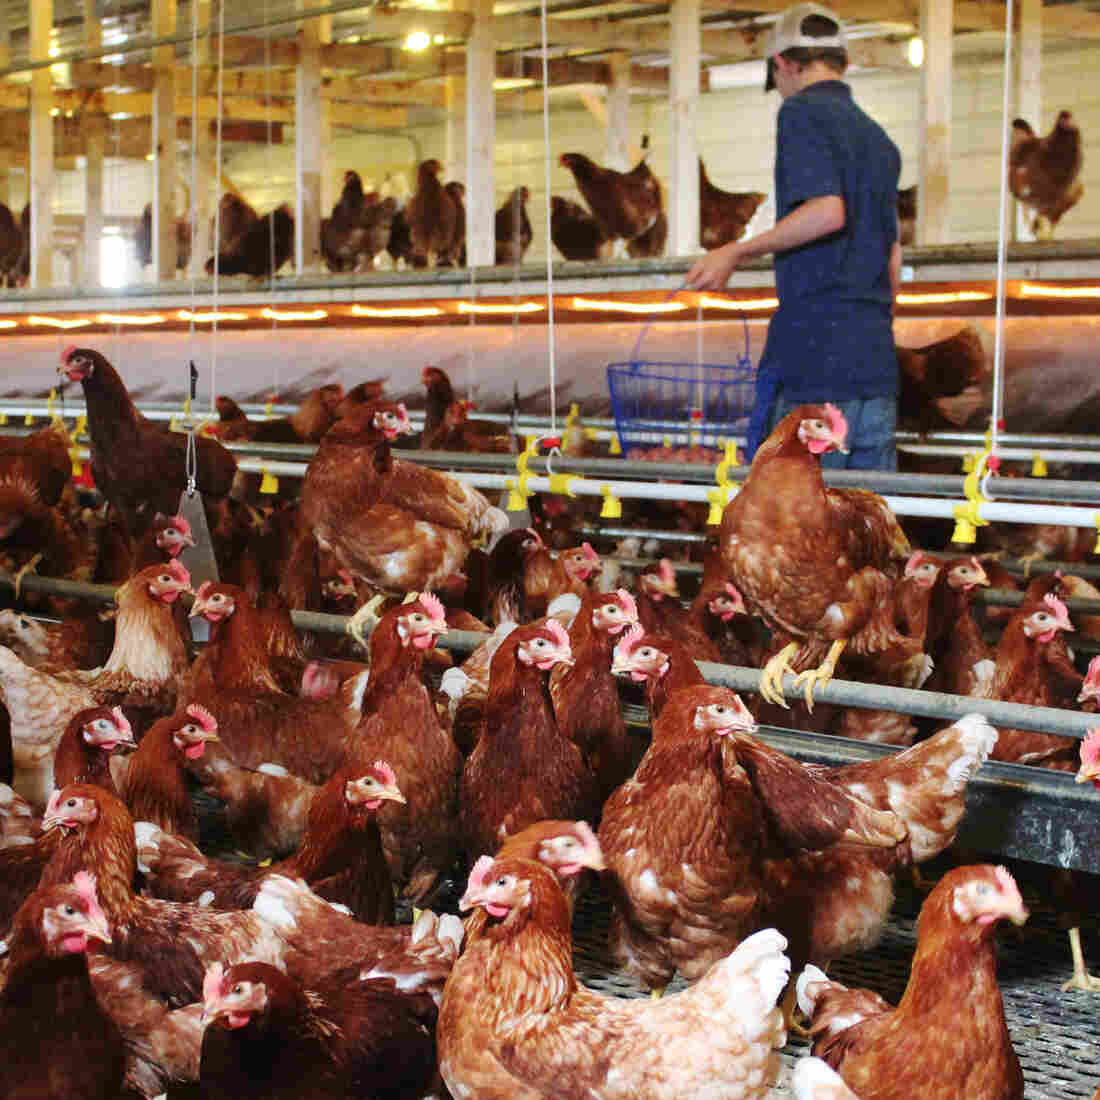 Cramped Chicken Cages Are Going Away. What Comes Next?